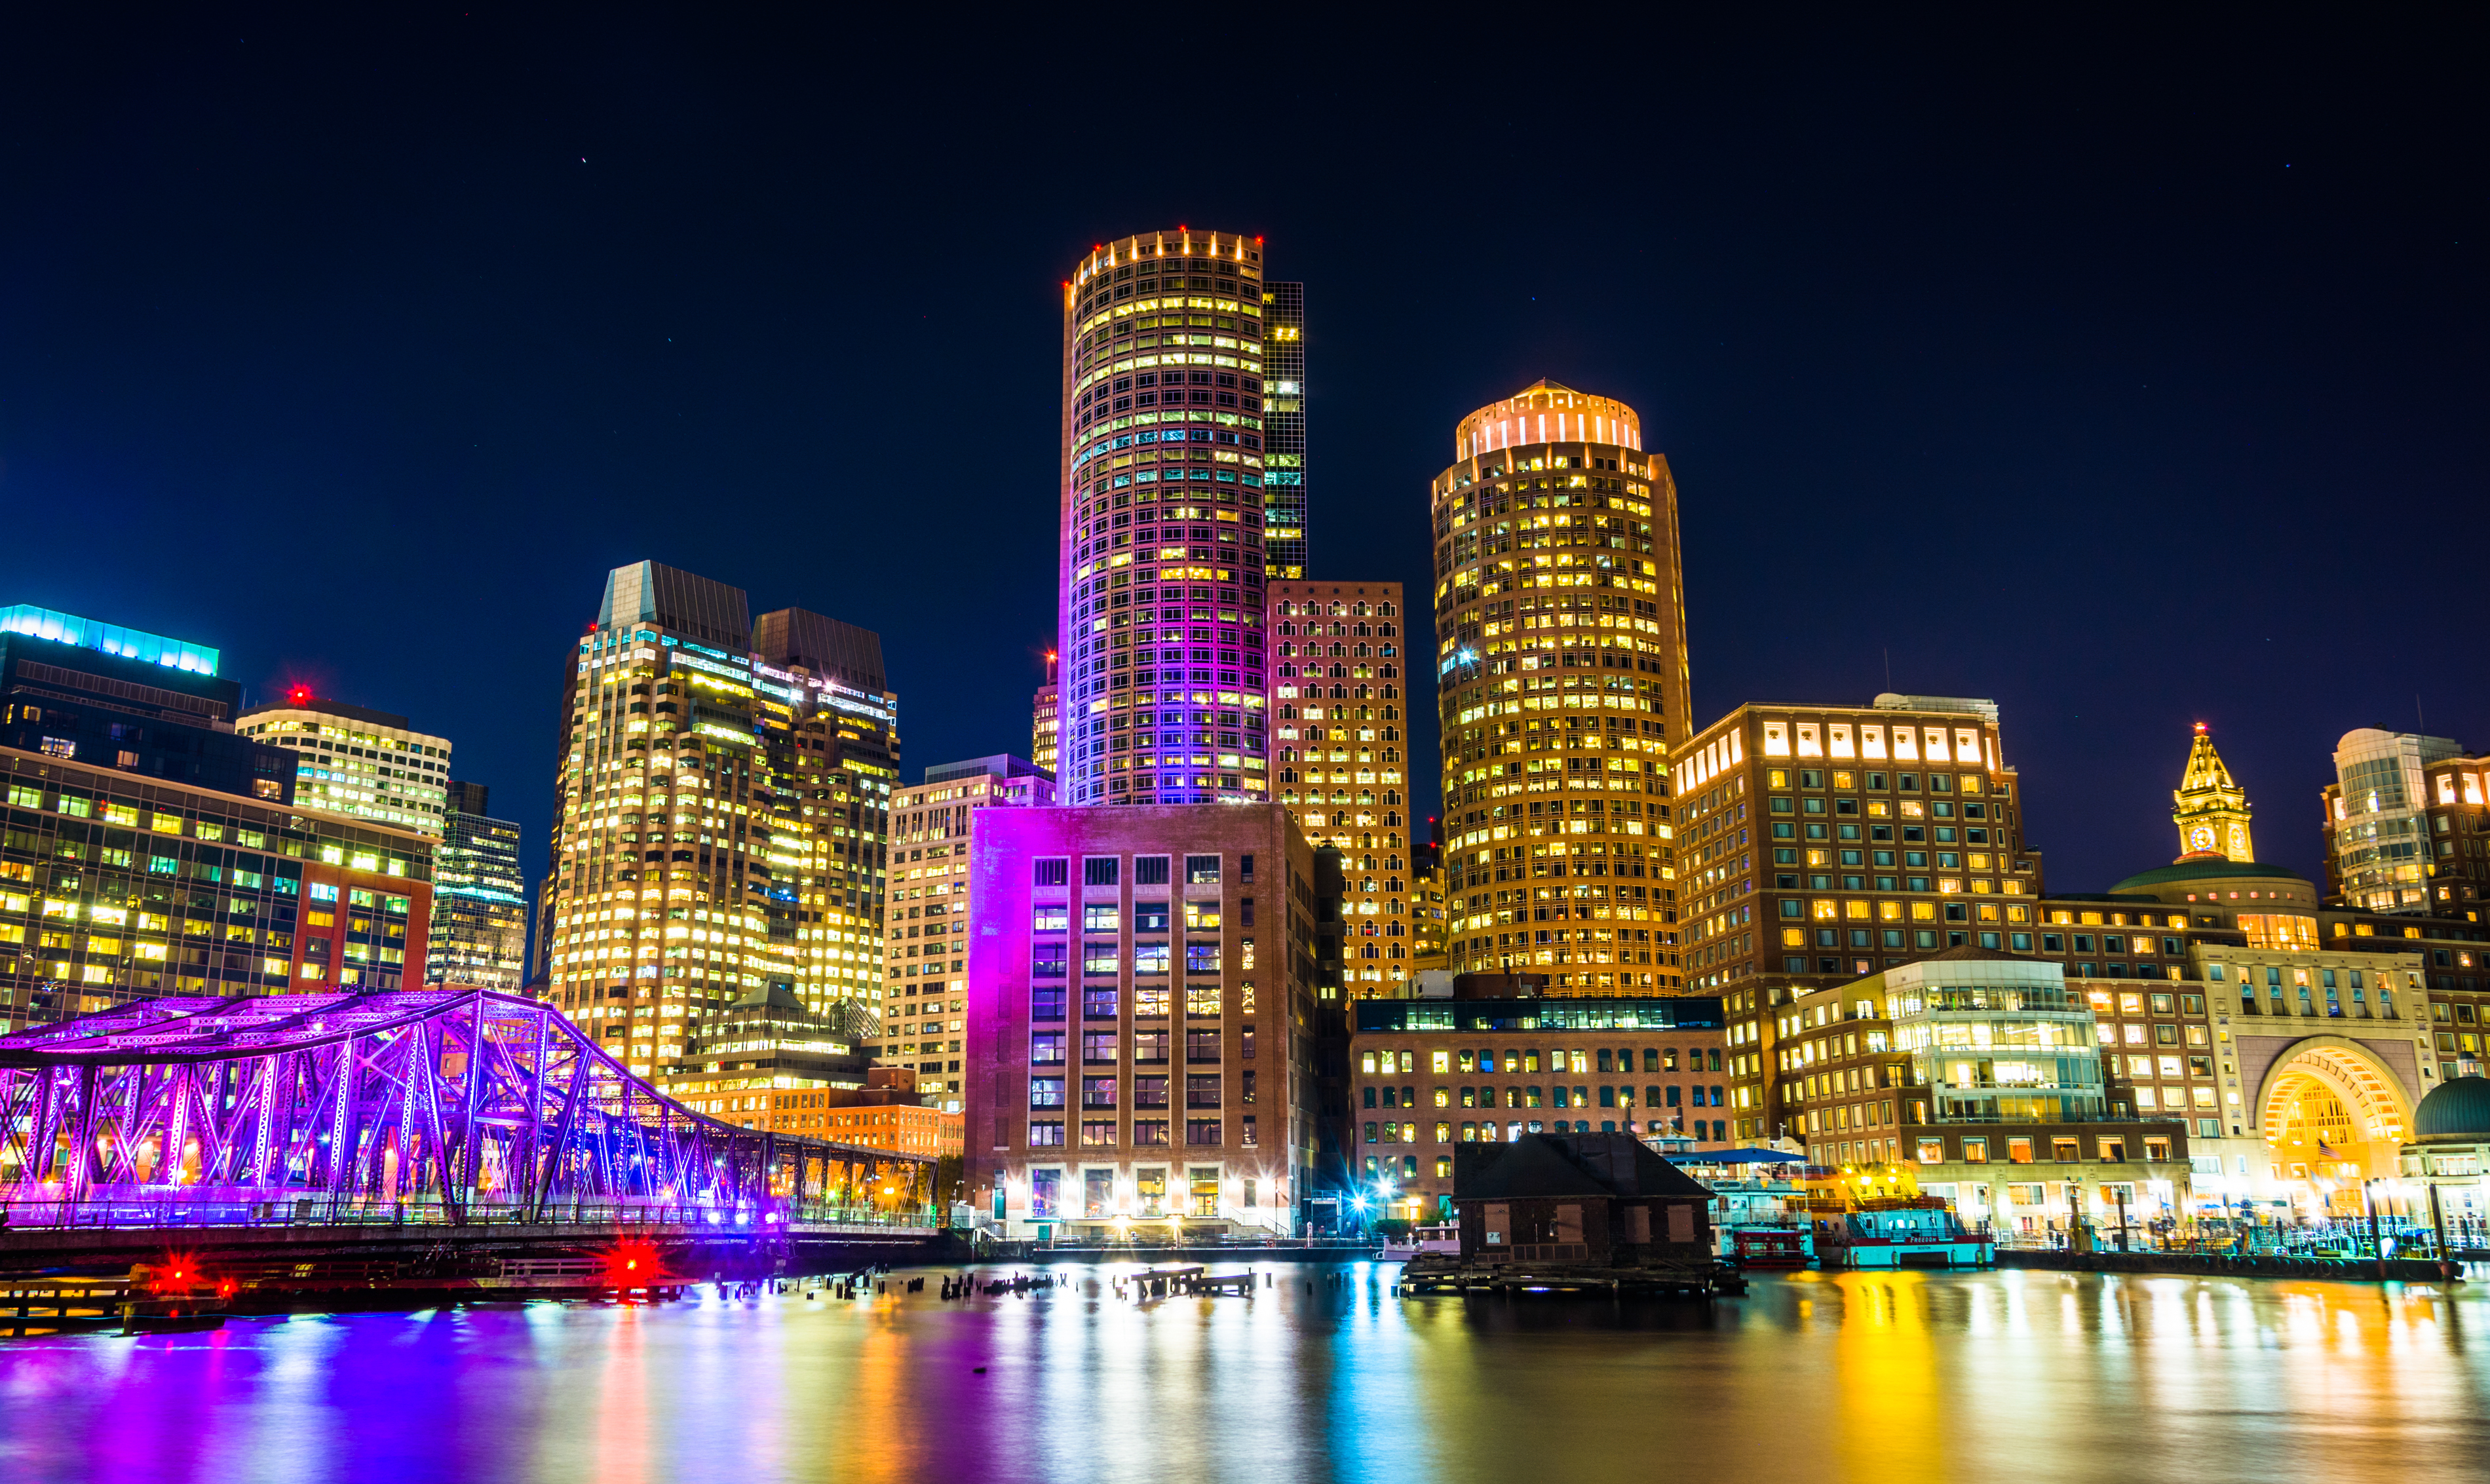 A nighttime view of the Boston skyline, focusing on a slice of the Financial District